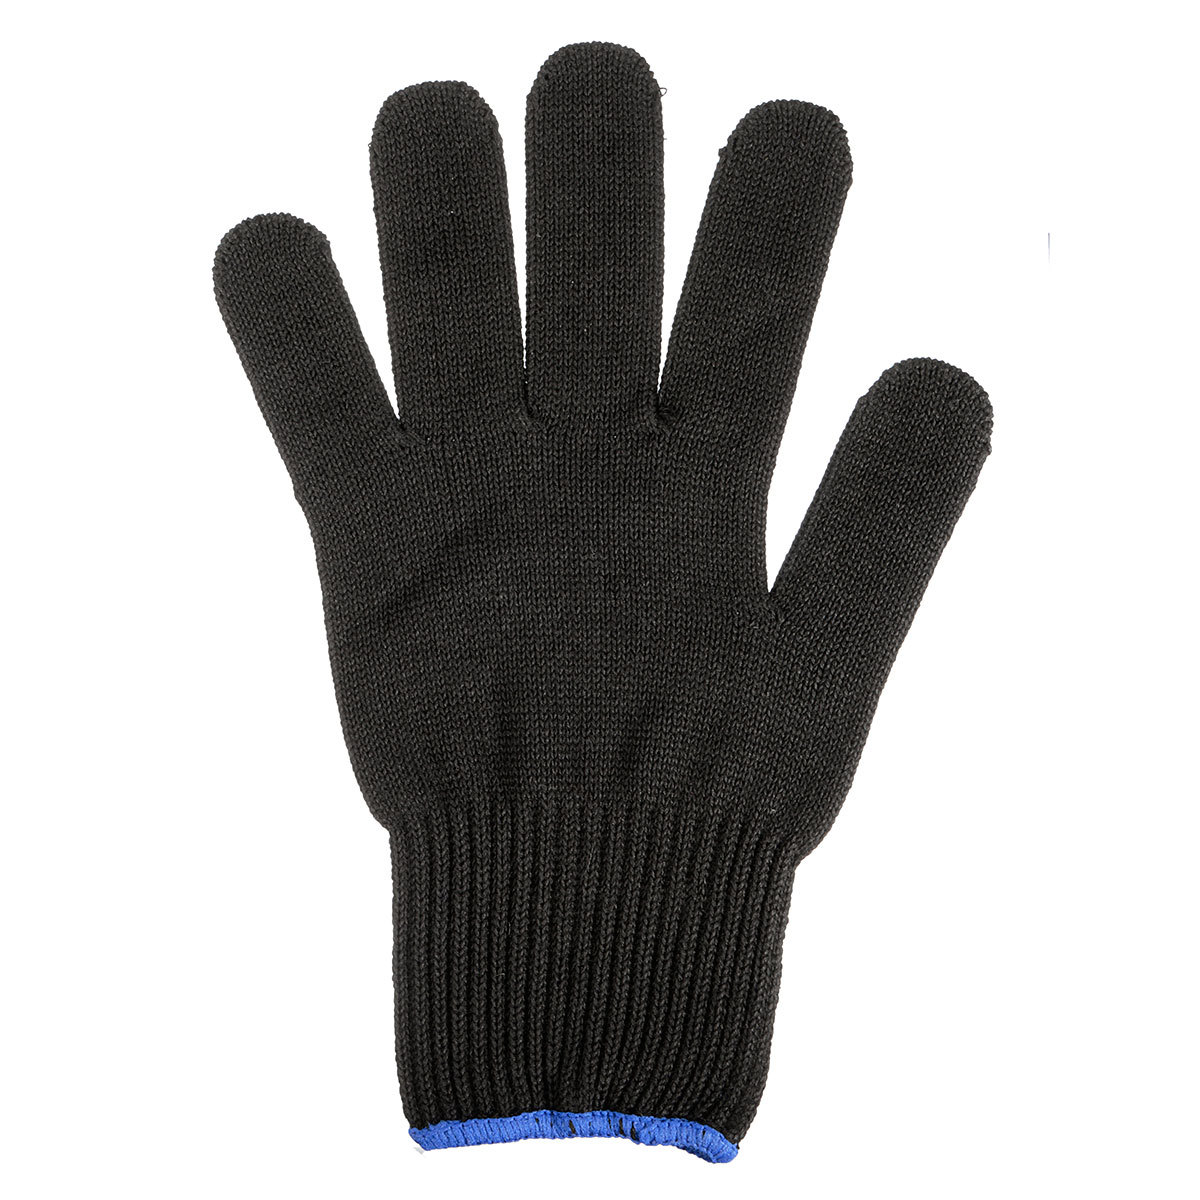 Heat Resistant Protective Glove Hair Styling Tool For